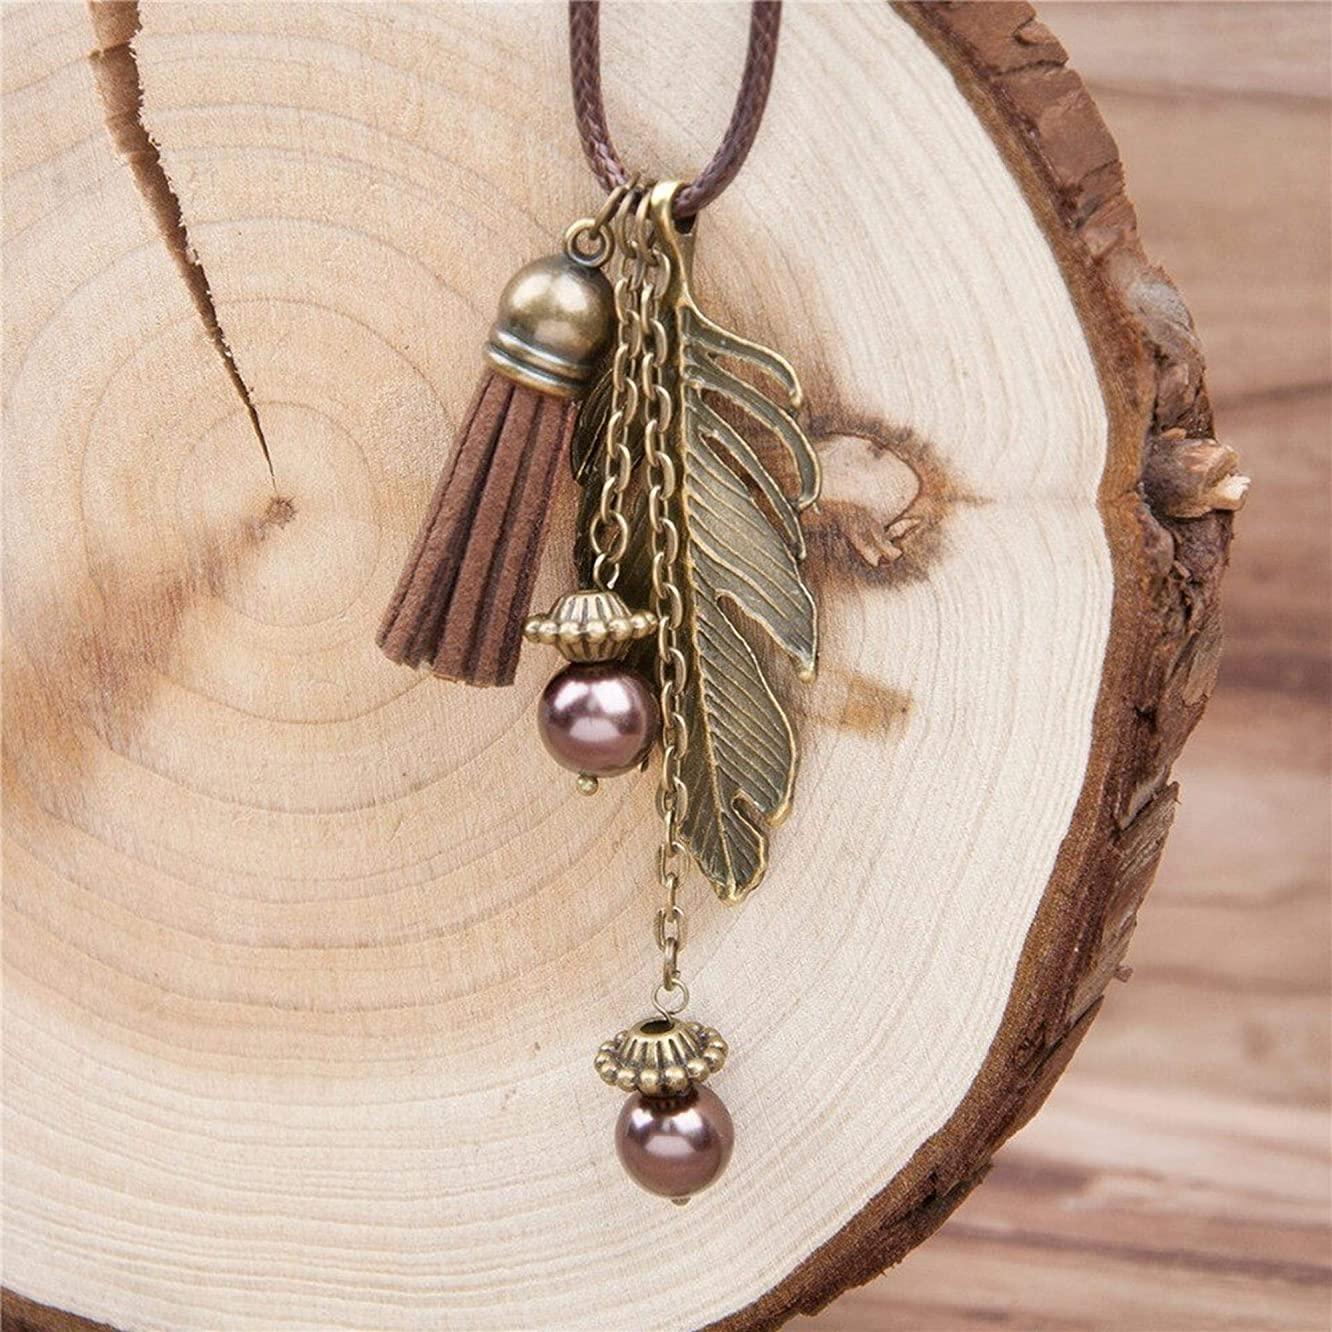 Handmade Fashion Tassel Pendant Necklace Feather Necklace Link Chain Bronze 46.5cm long brown 1 Piece for women